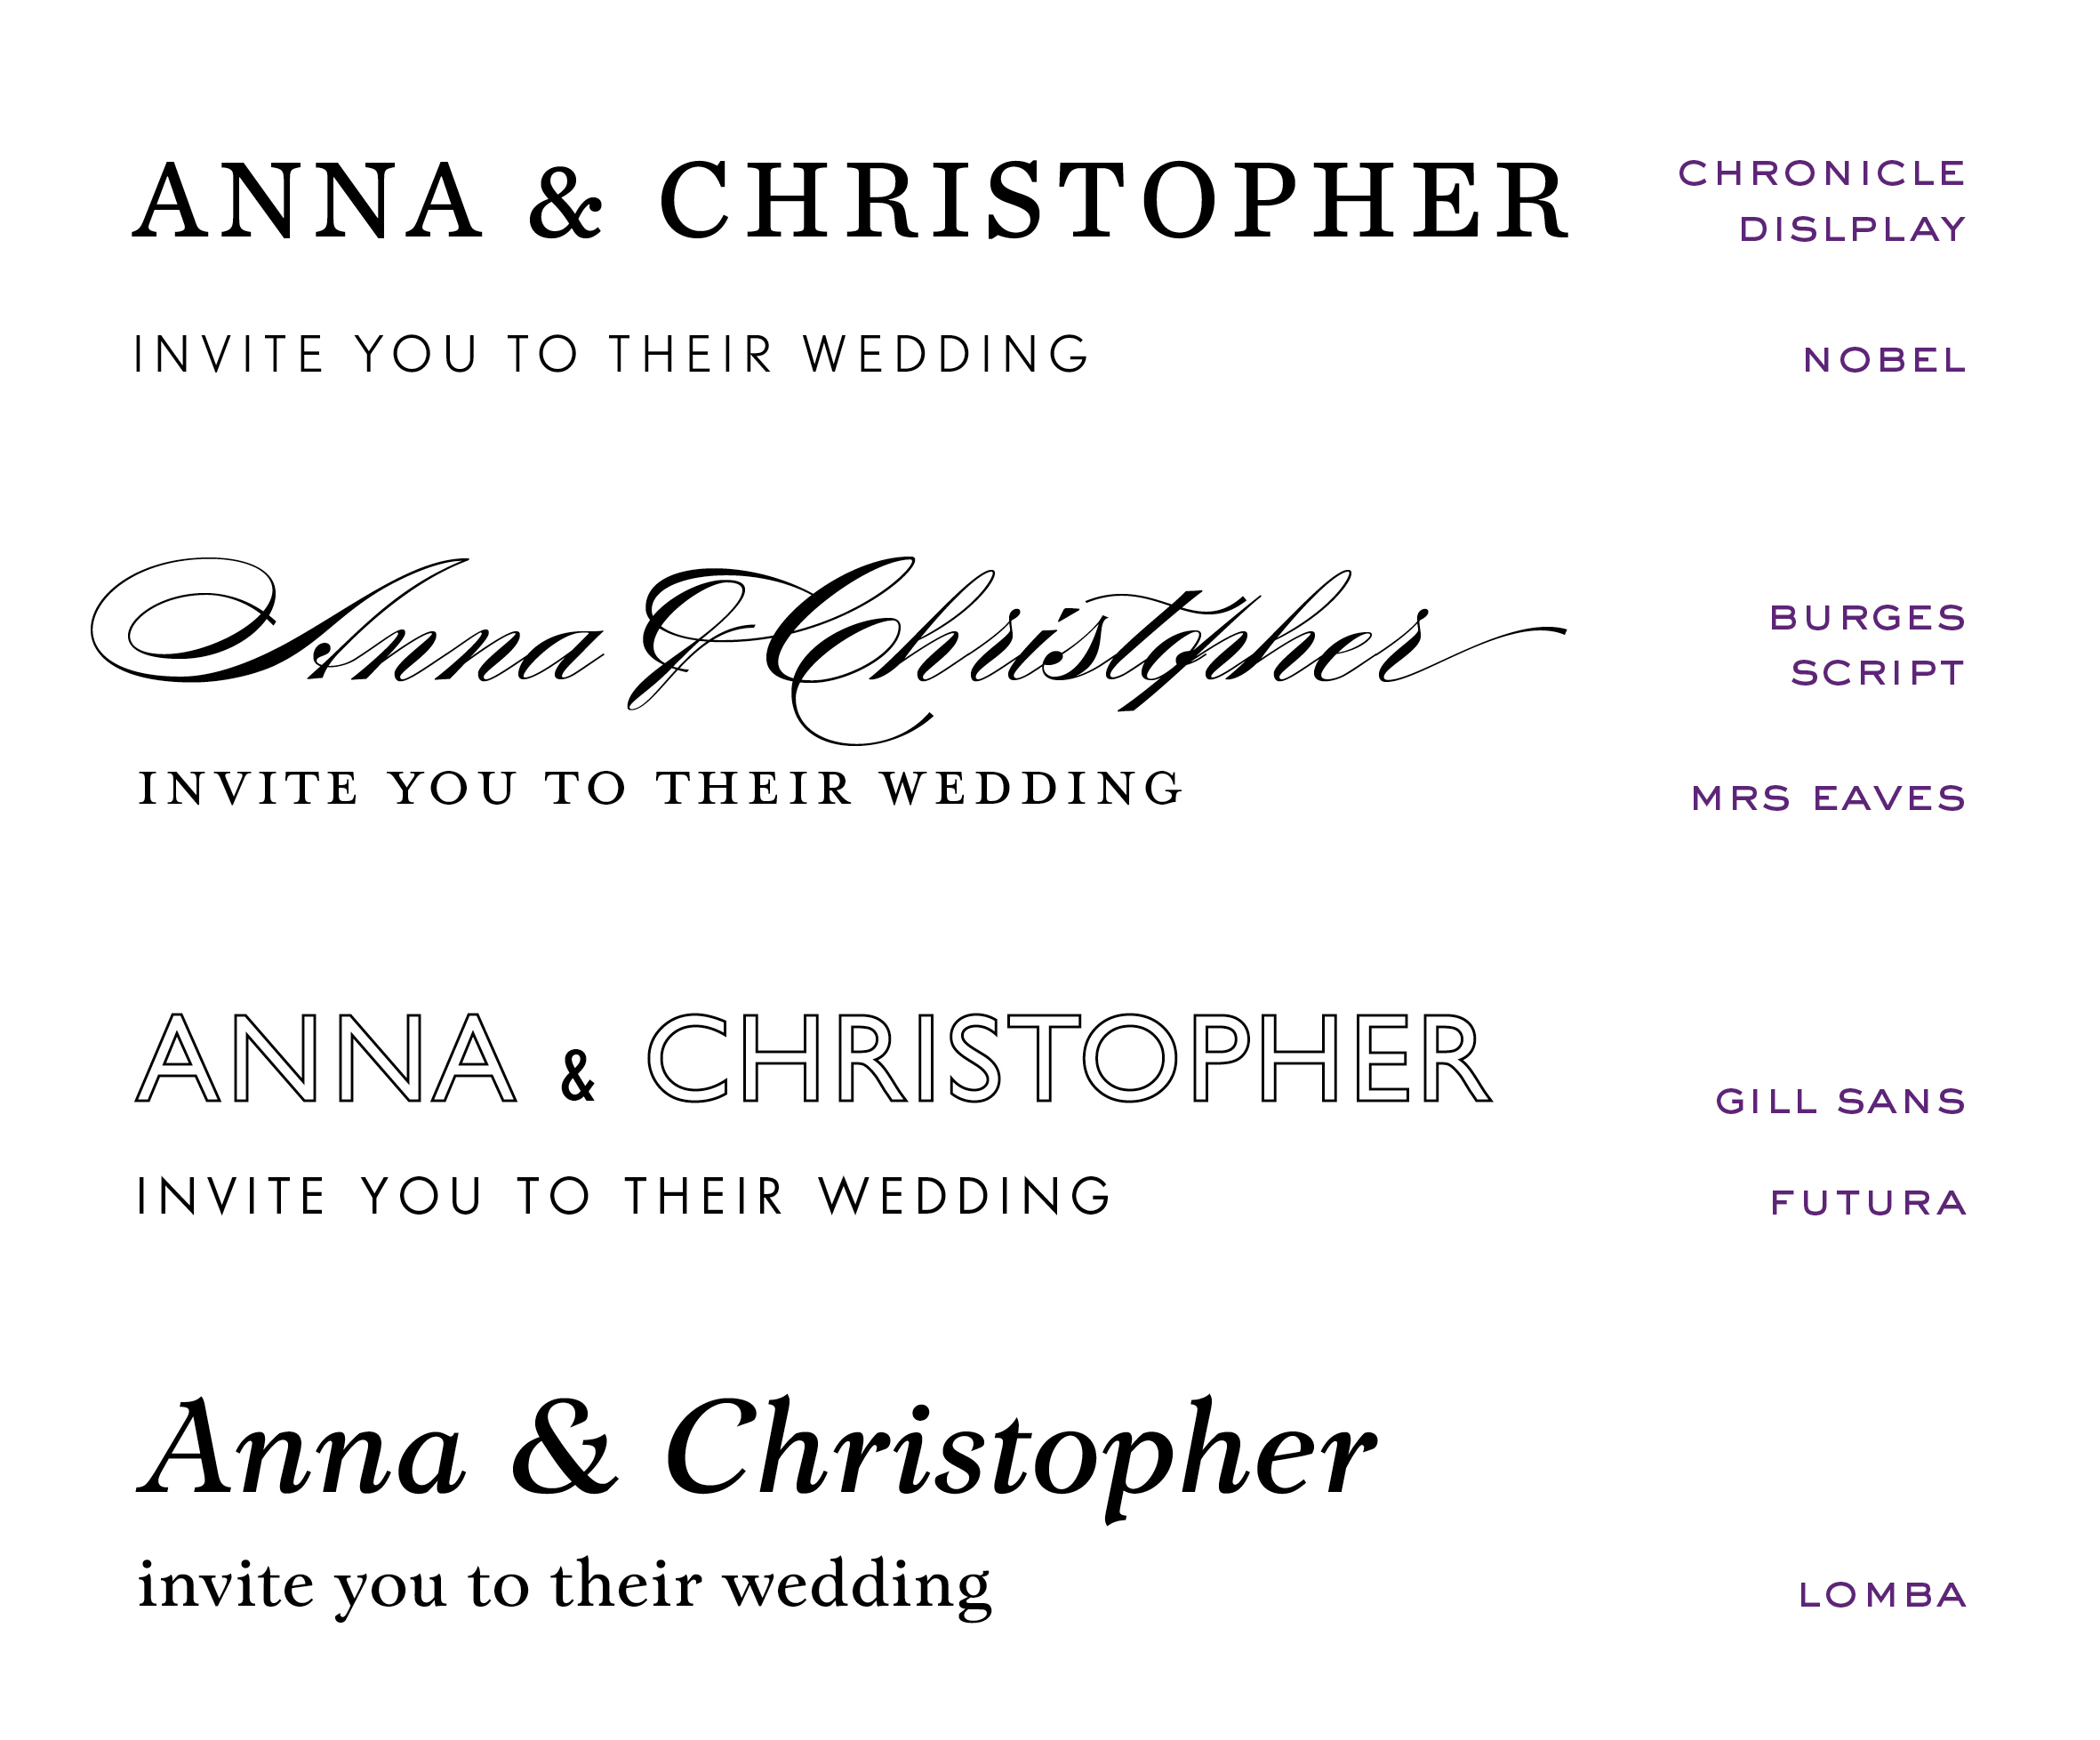 wedding invites display font - Wedding Invitation Fonts